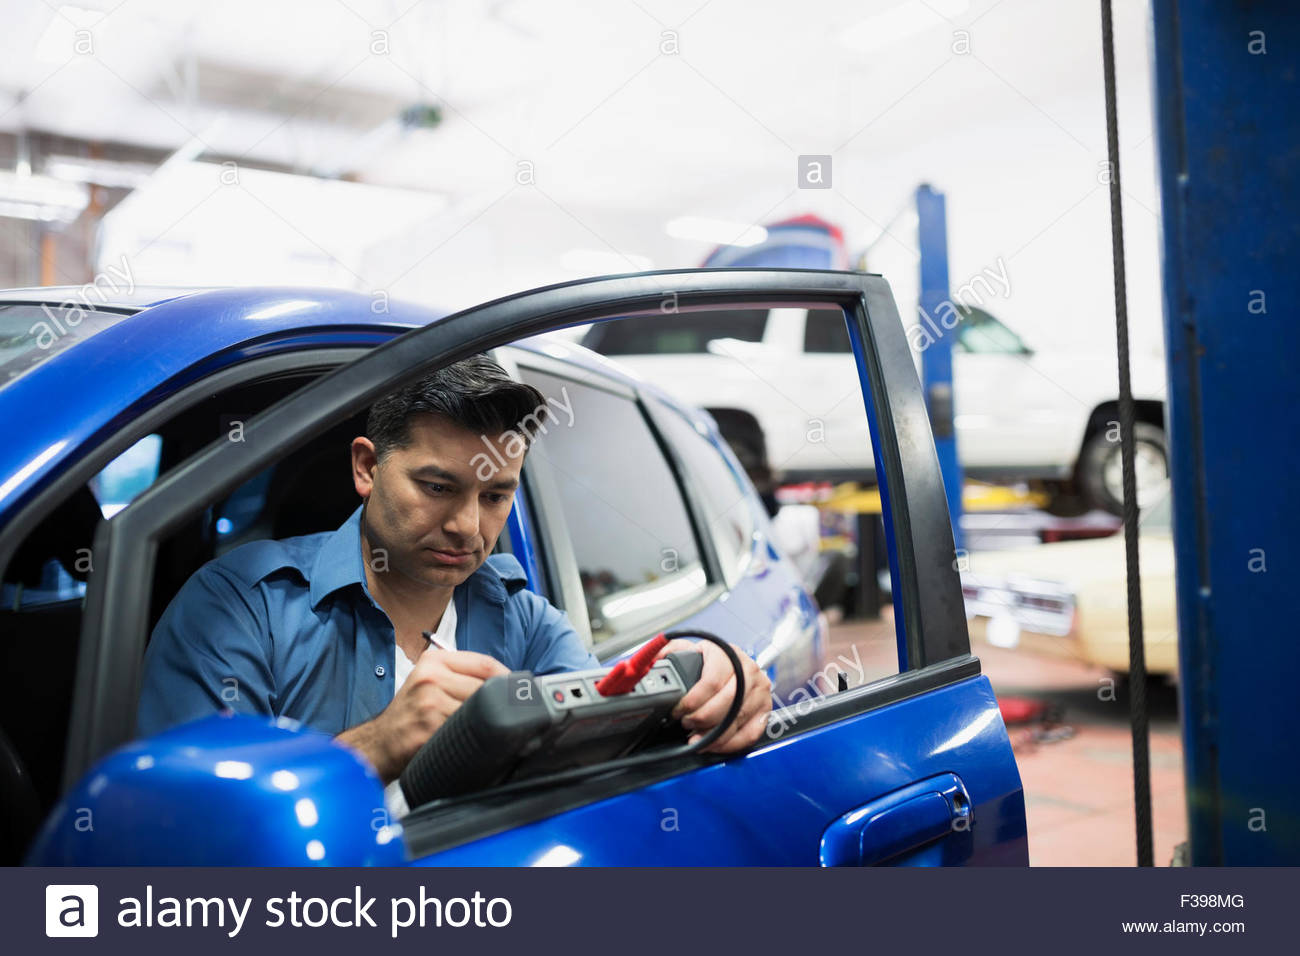 Mechanic diagnostic testing car in auto repair shop Stock Photo